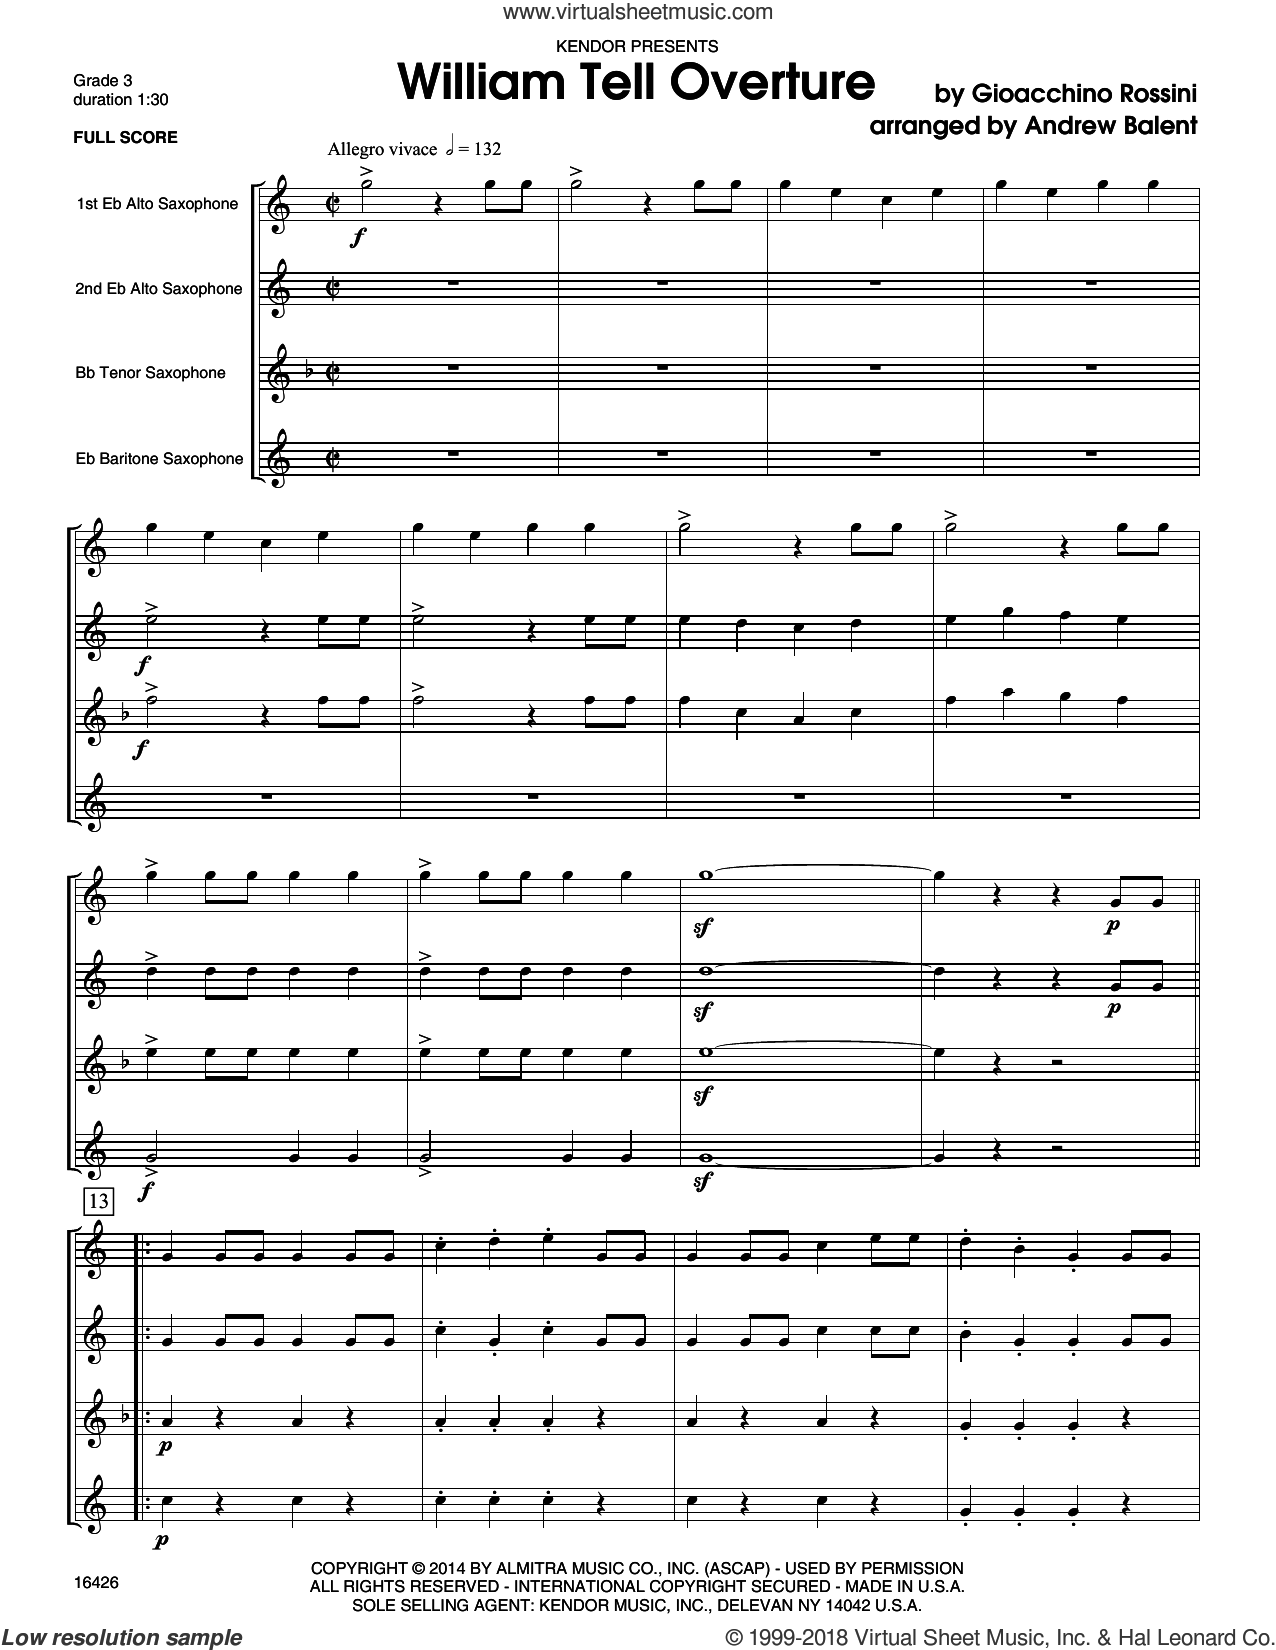 William Tell Overture (COMPLETE) sheet music for saxophone quartet by Gioacchino Rossini and Andrew Balent, intermediate saxophone quartet. Score Image Preview.